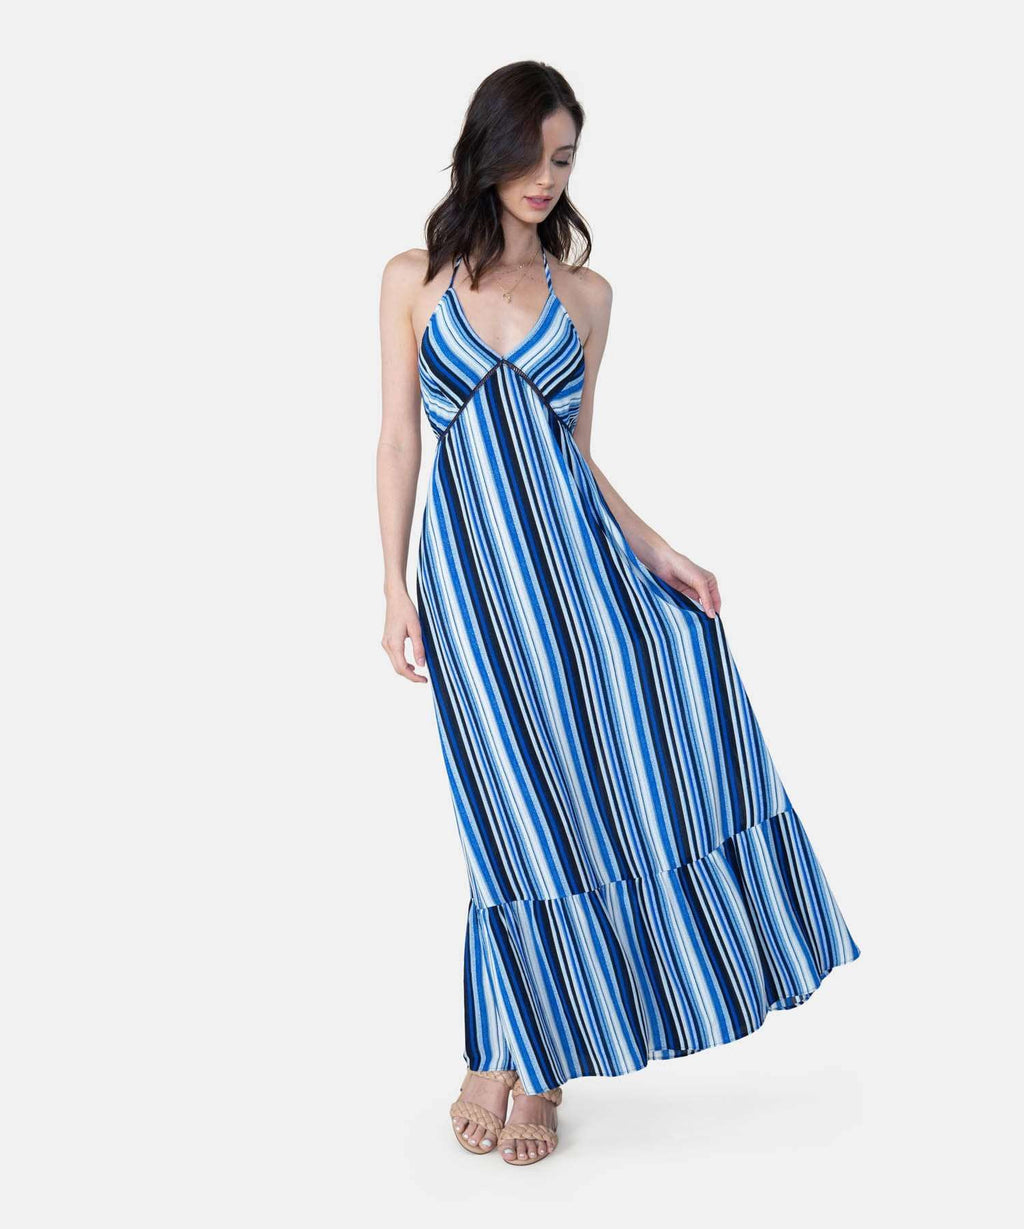 New Wave Exclusive Maxi Dress